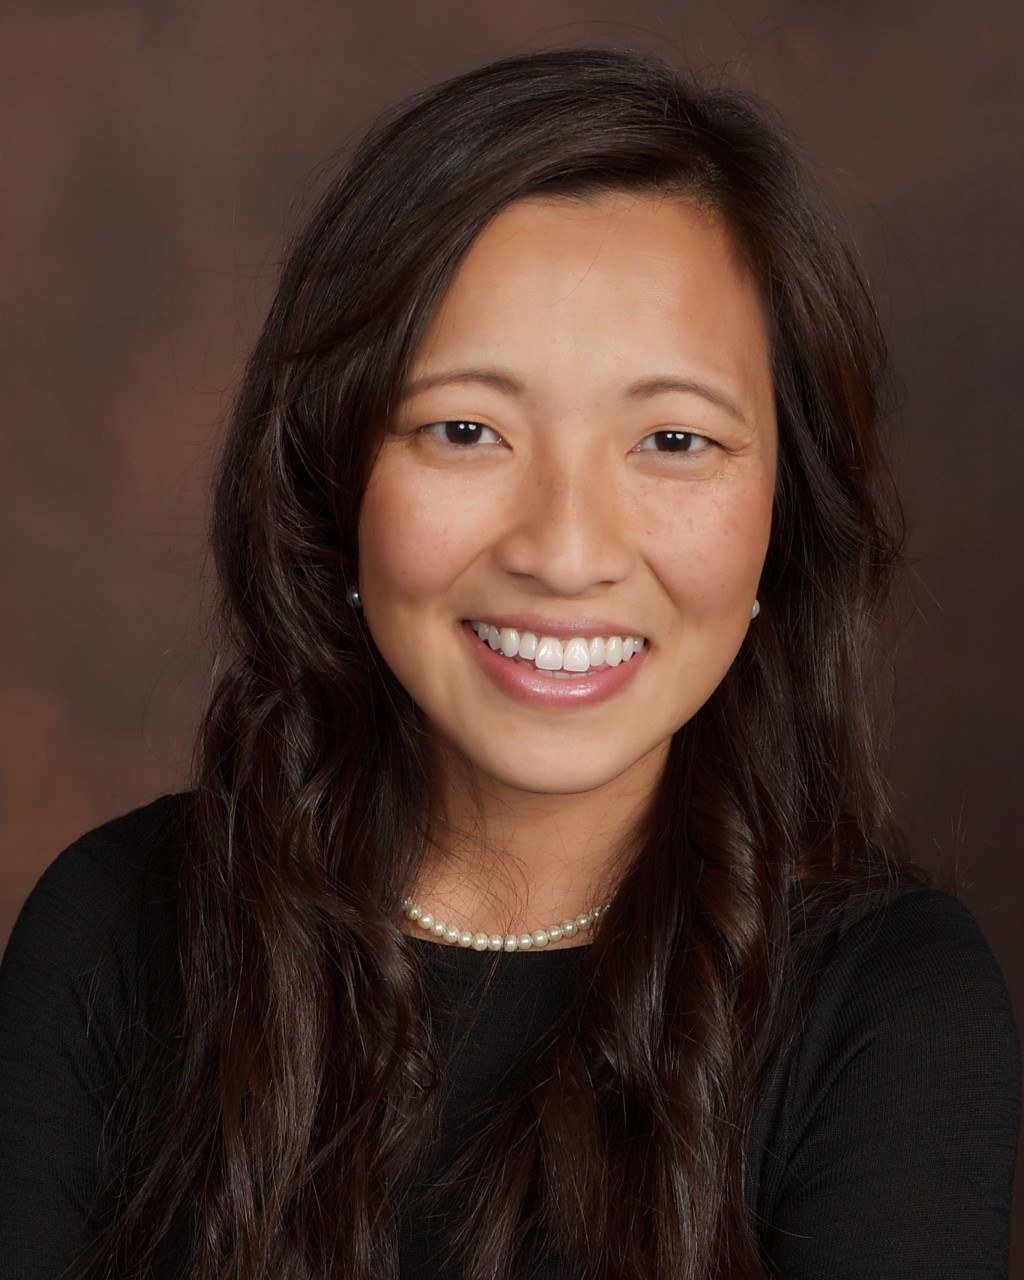 KaHoua Yang - Year in medical school: second yearHometown: Wausau, WIHigh School: Wausau West High SchoolHCF role: Public Relations, Outreach Committee, and Grant Follow-Up Committee